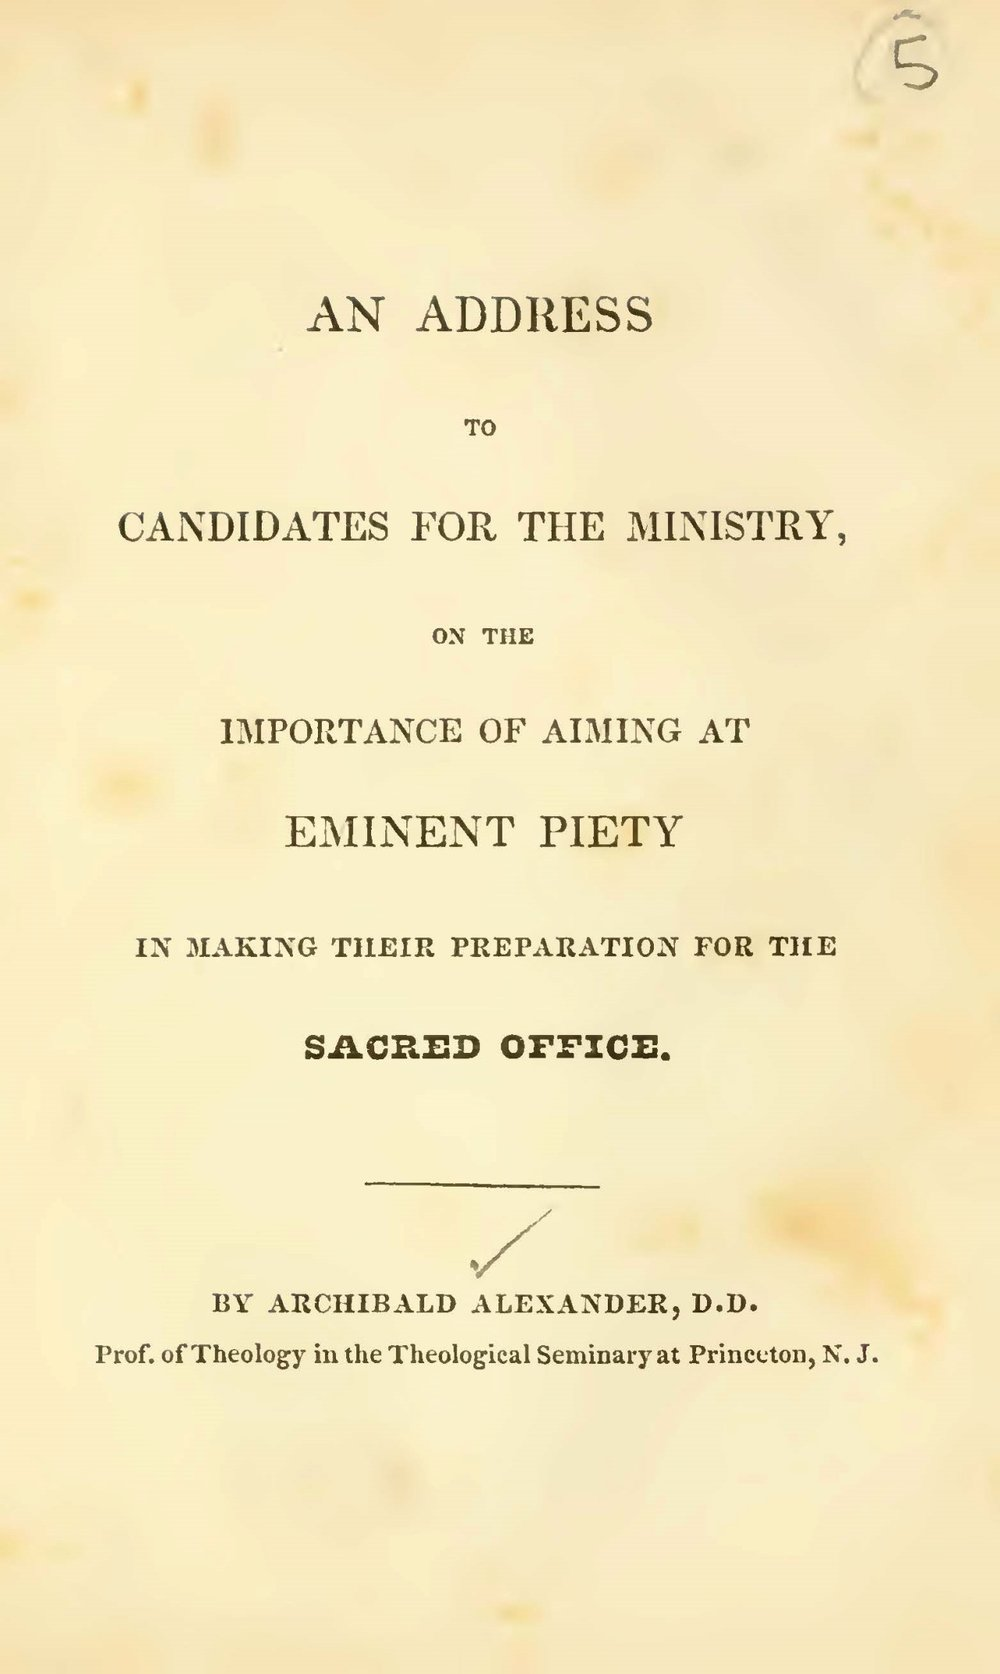 Alexander, Archibald, An Address to Candidates for the Ministry Title Page.jpg